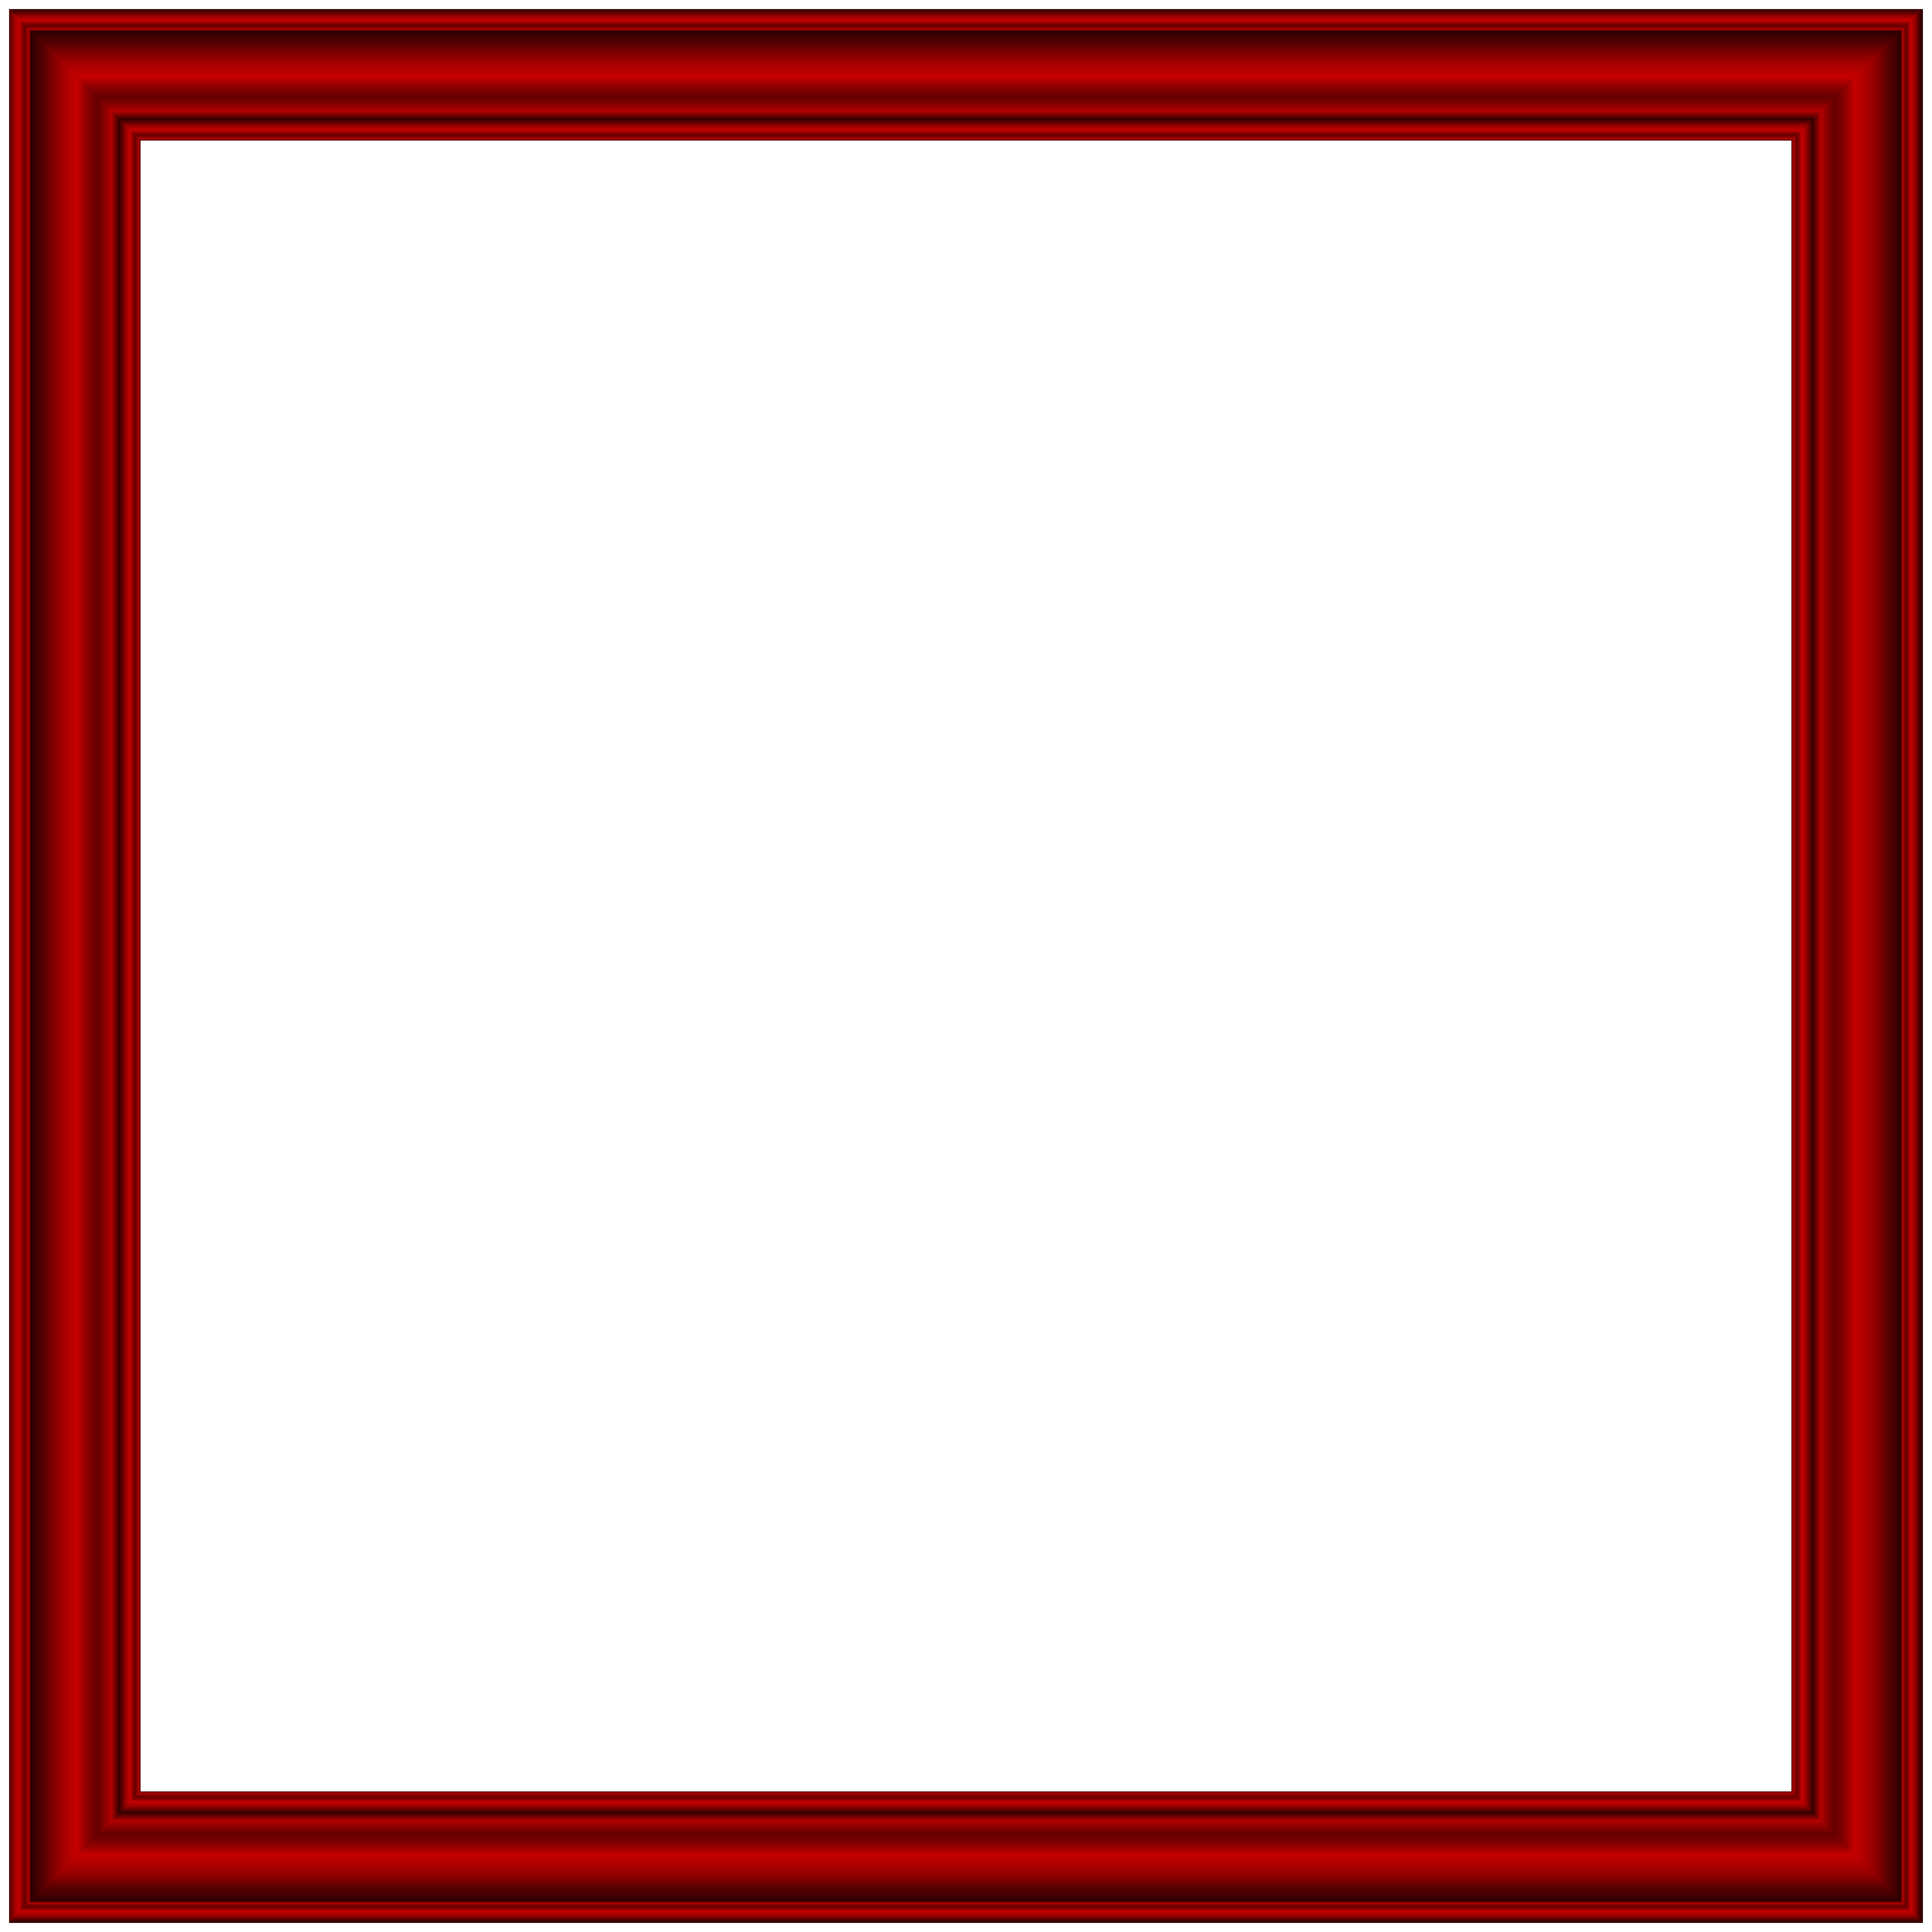 Red frame transparent png. Square clipart photograph border